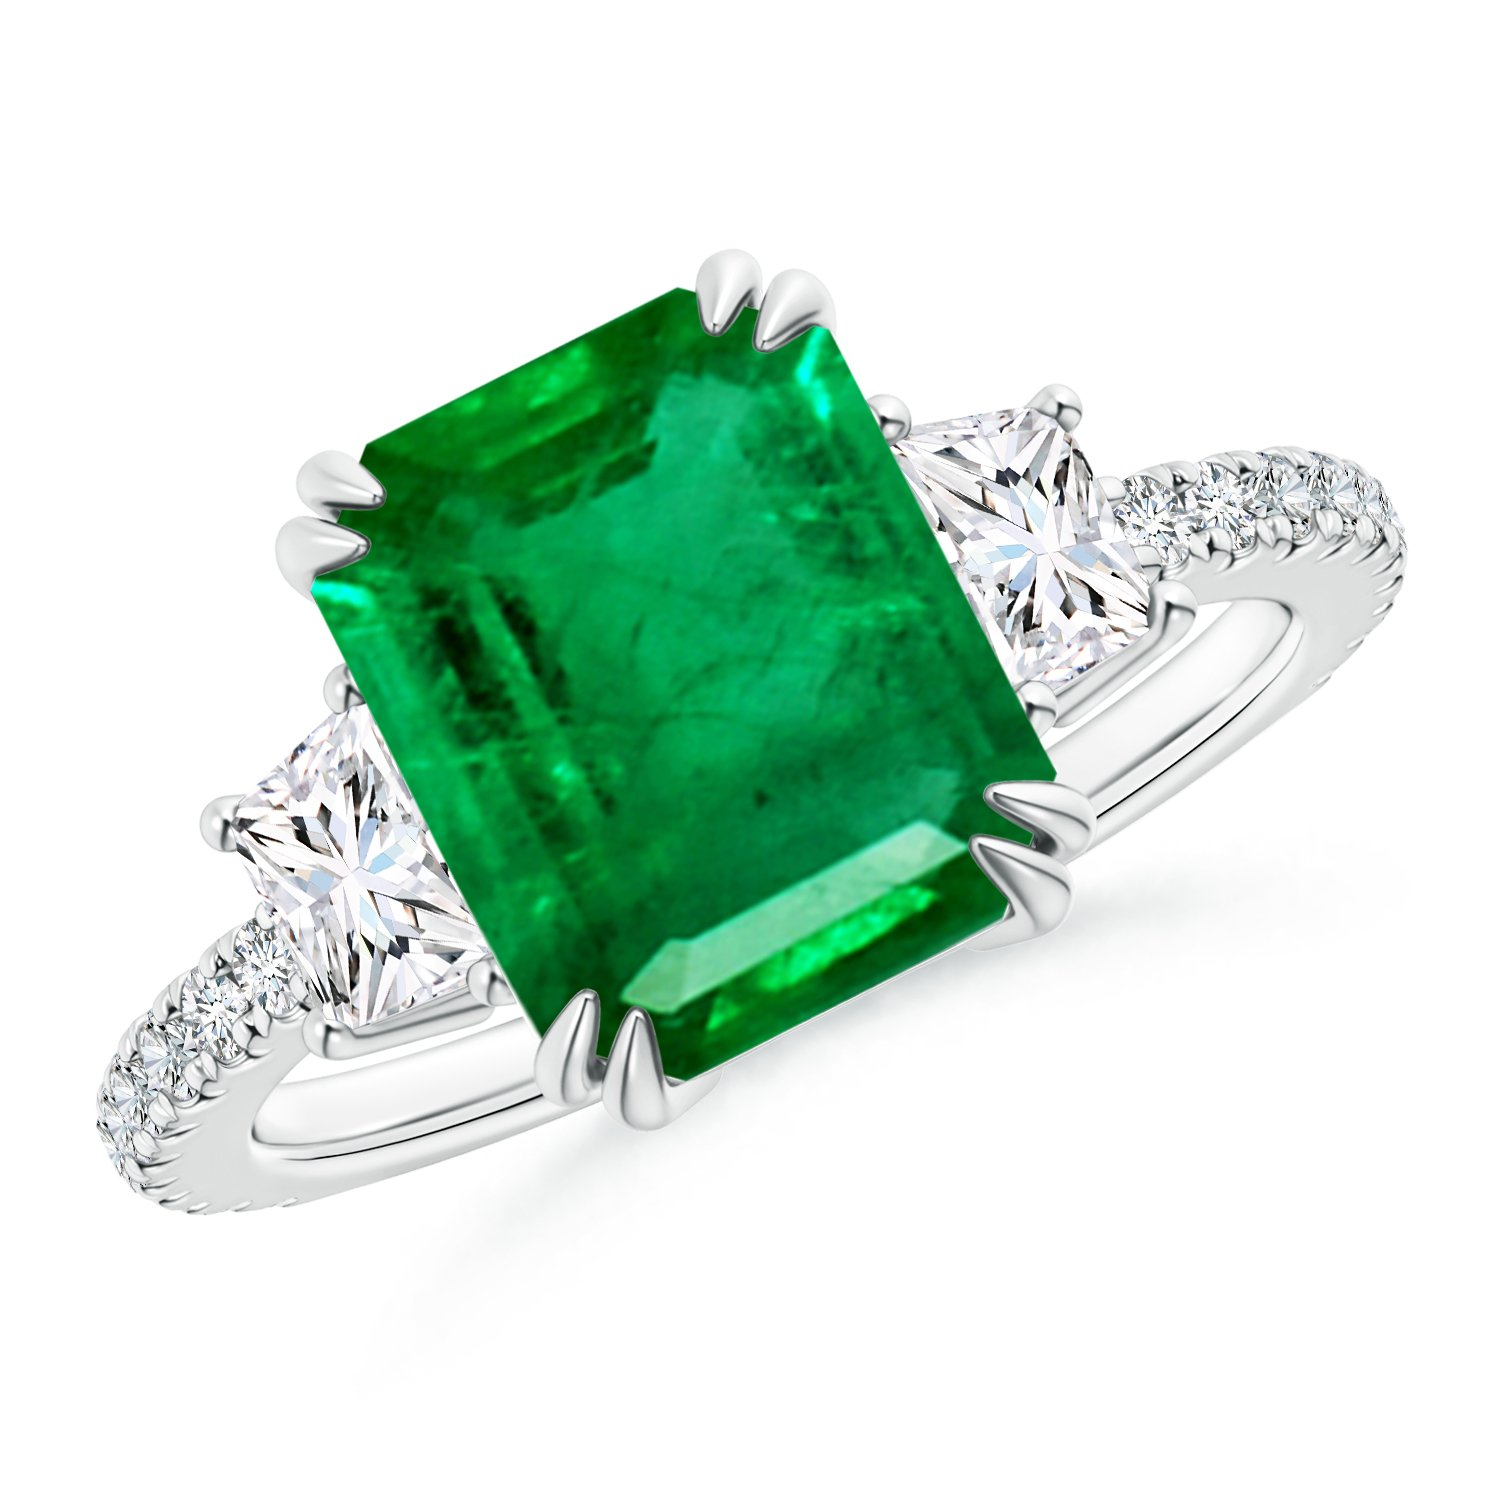 treated with heat platinum gia emerald jewelry diamond bale amazon com east pendant west dp certified in